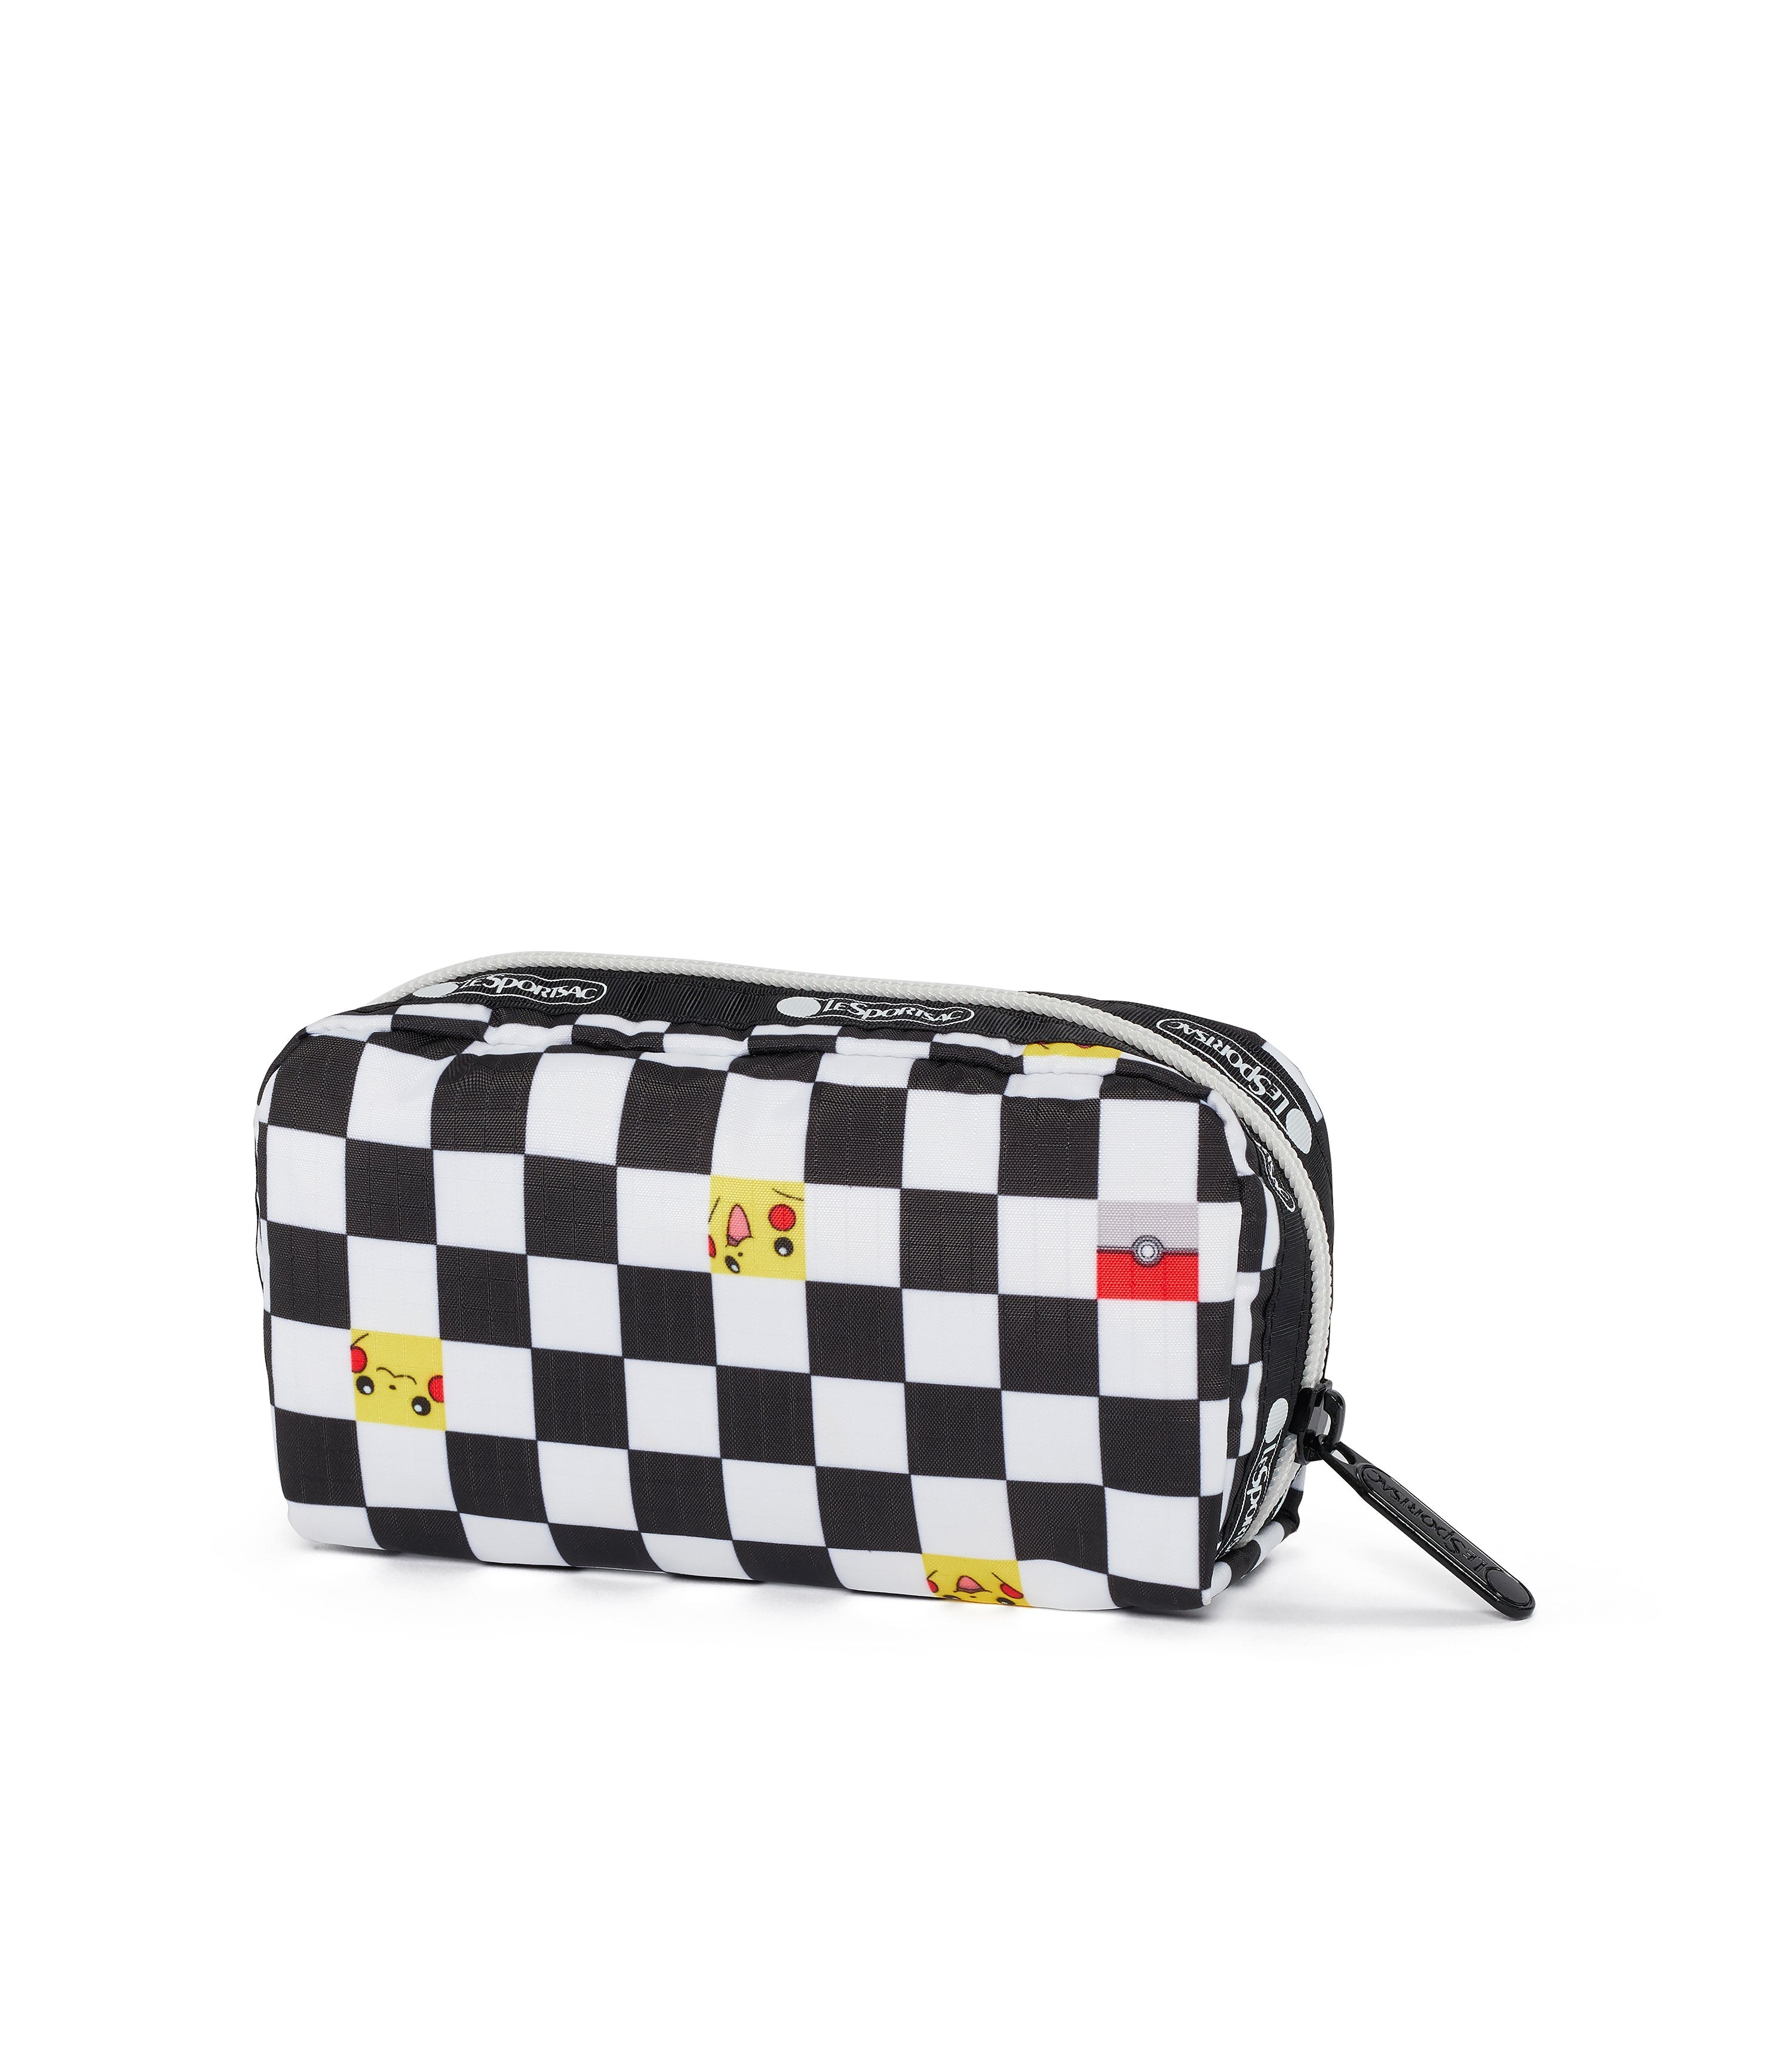 Pokémon Rectangular Cosmetic-LeSportsac-Small-Pikachu-Pouch-back